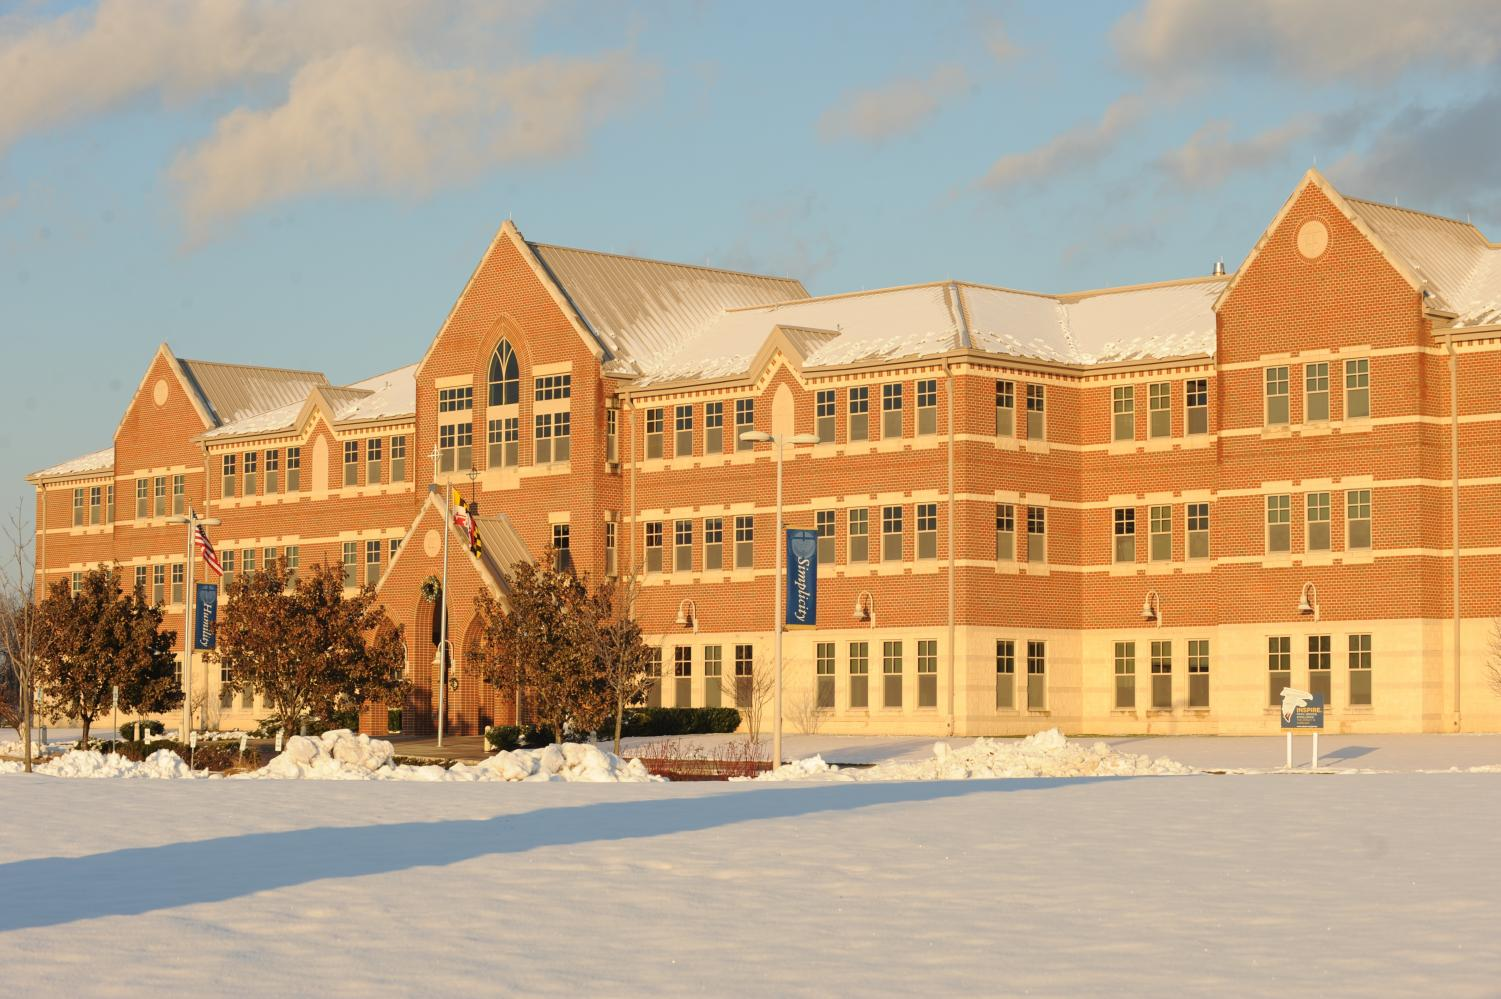 GC had its first snow day on Thursday, January 4